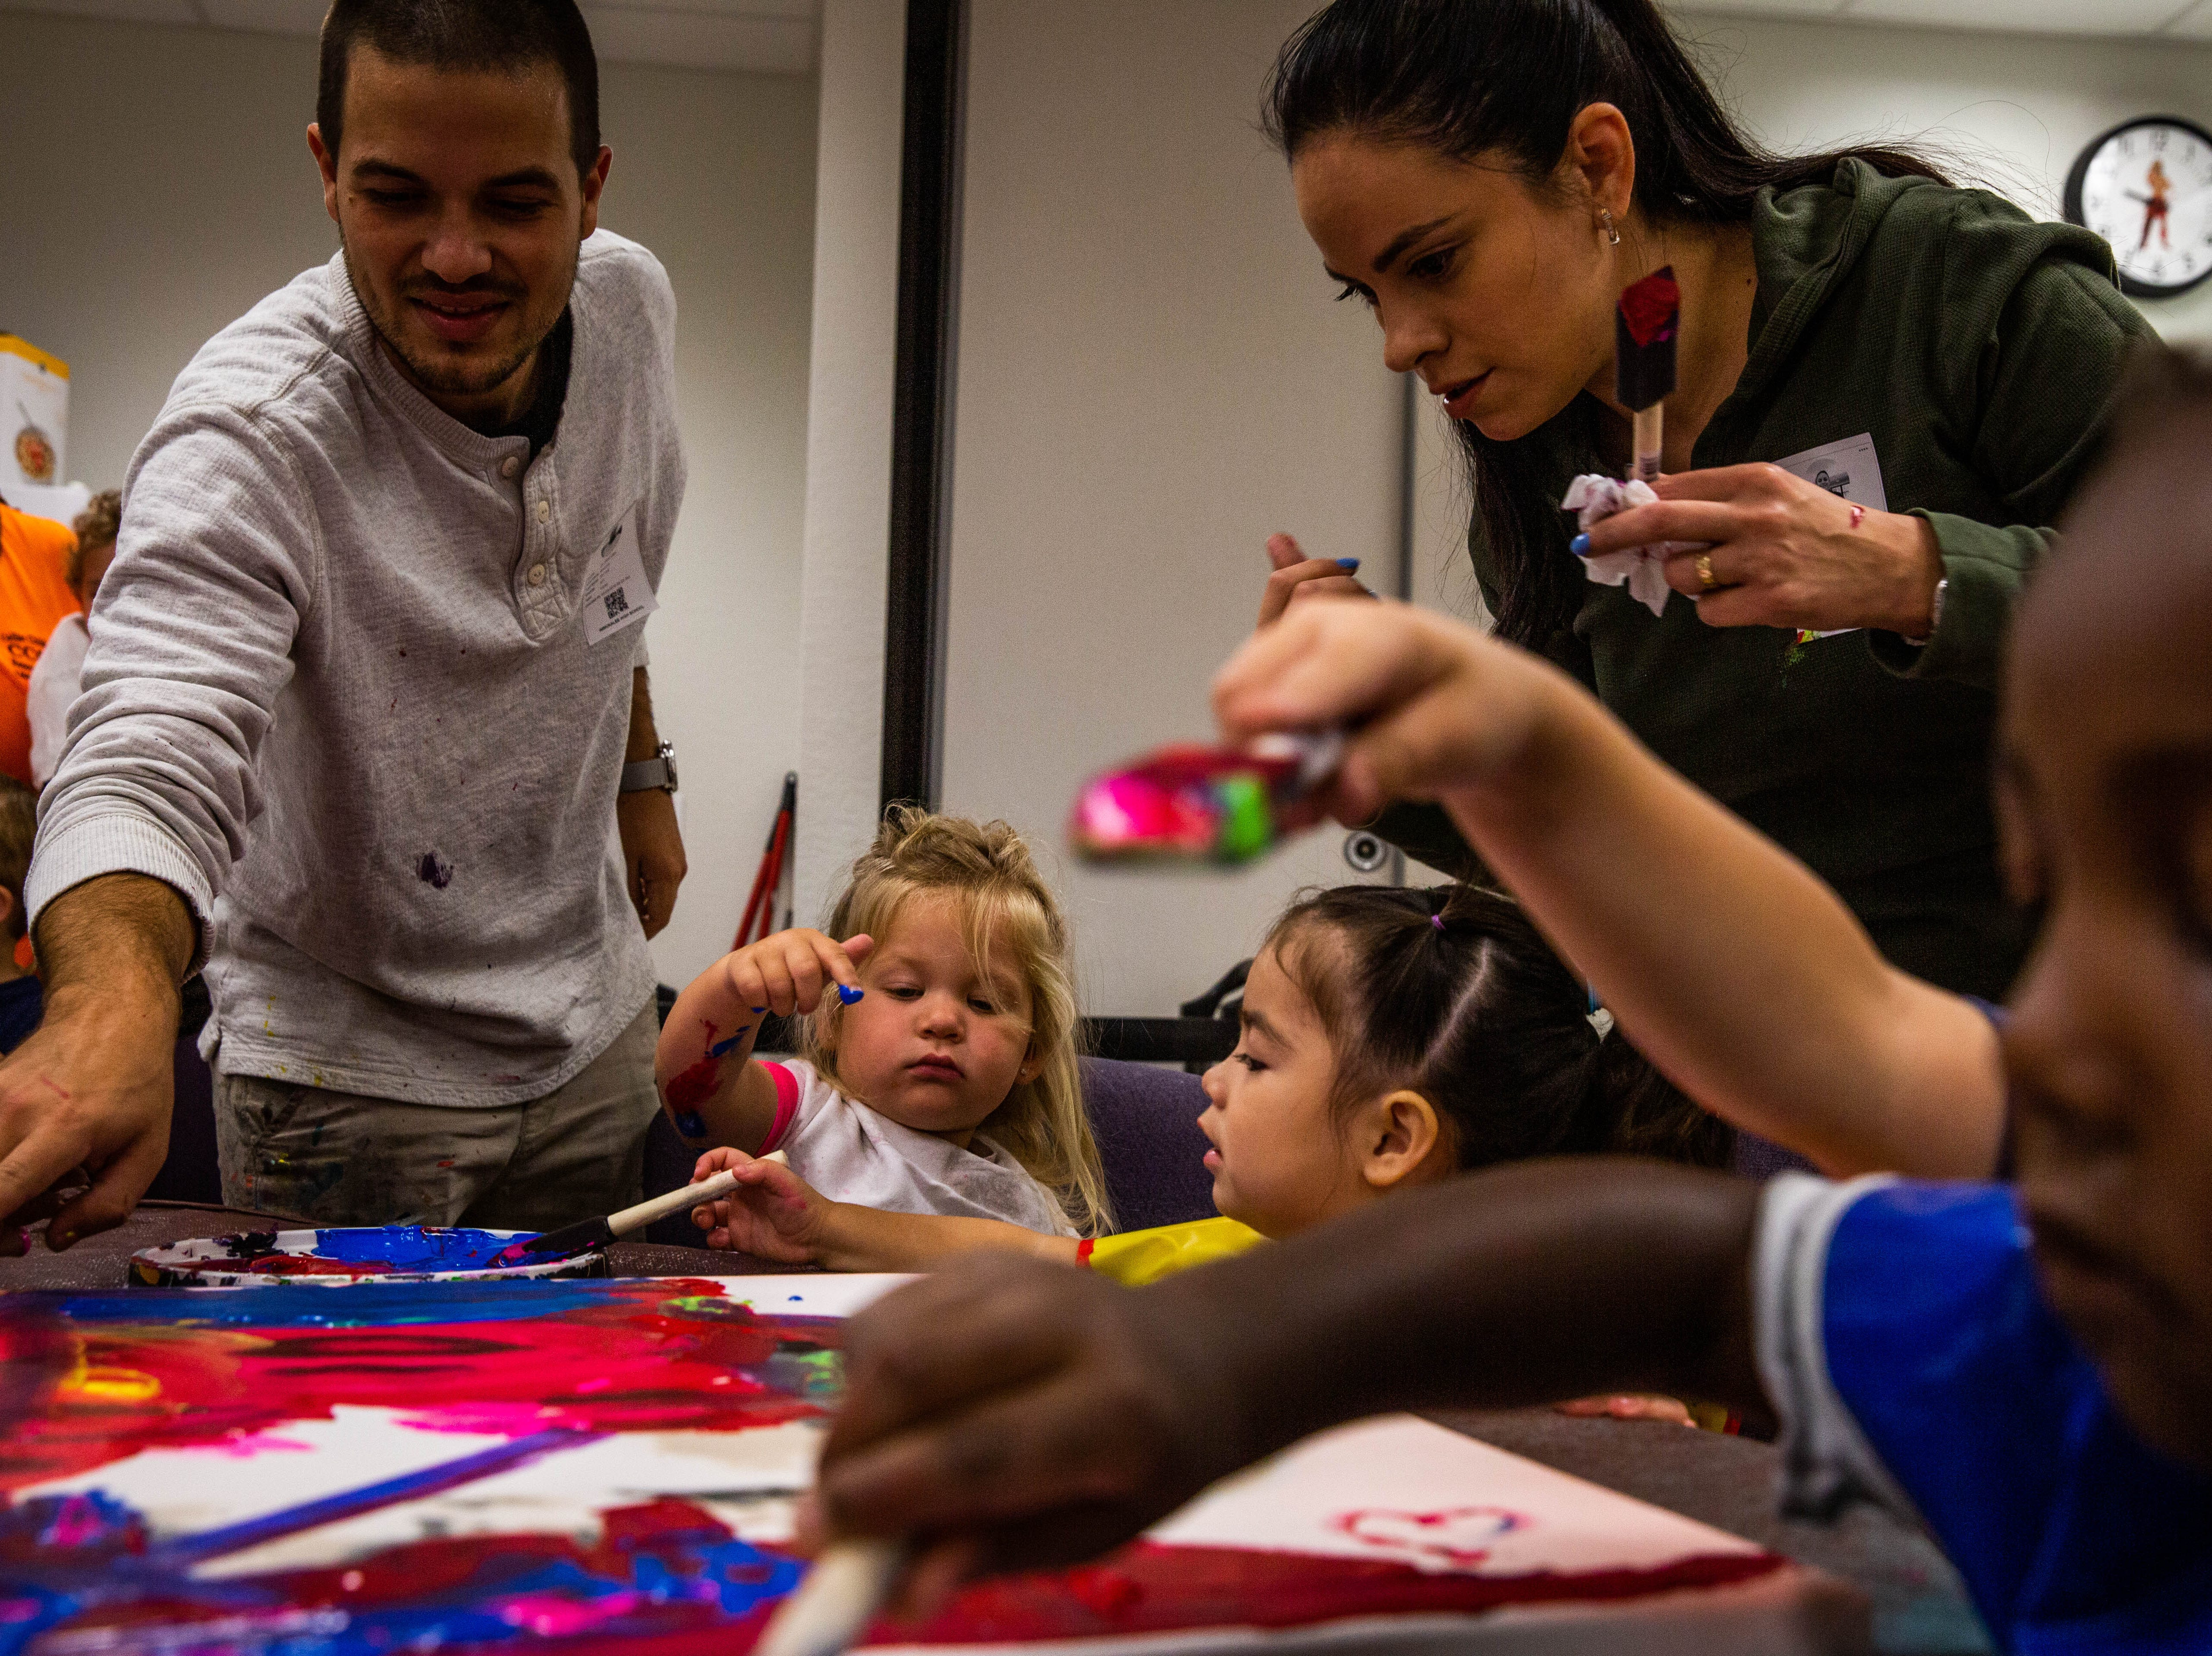 Marcus and Beatriz Zotter create art with children at A Step Up, a Collier Child Care Resources Early Childhood Development Center at Immokalee High School on March 20, 2019. The process they used with the children was inspired by street art.